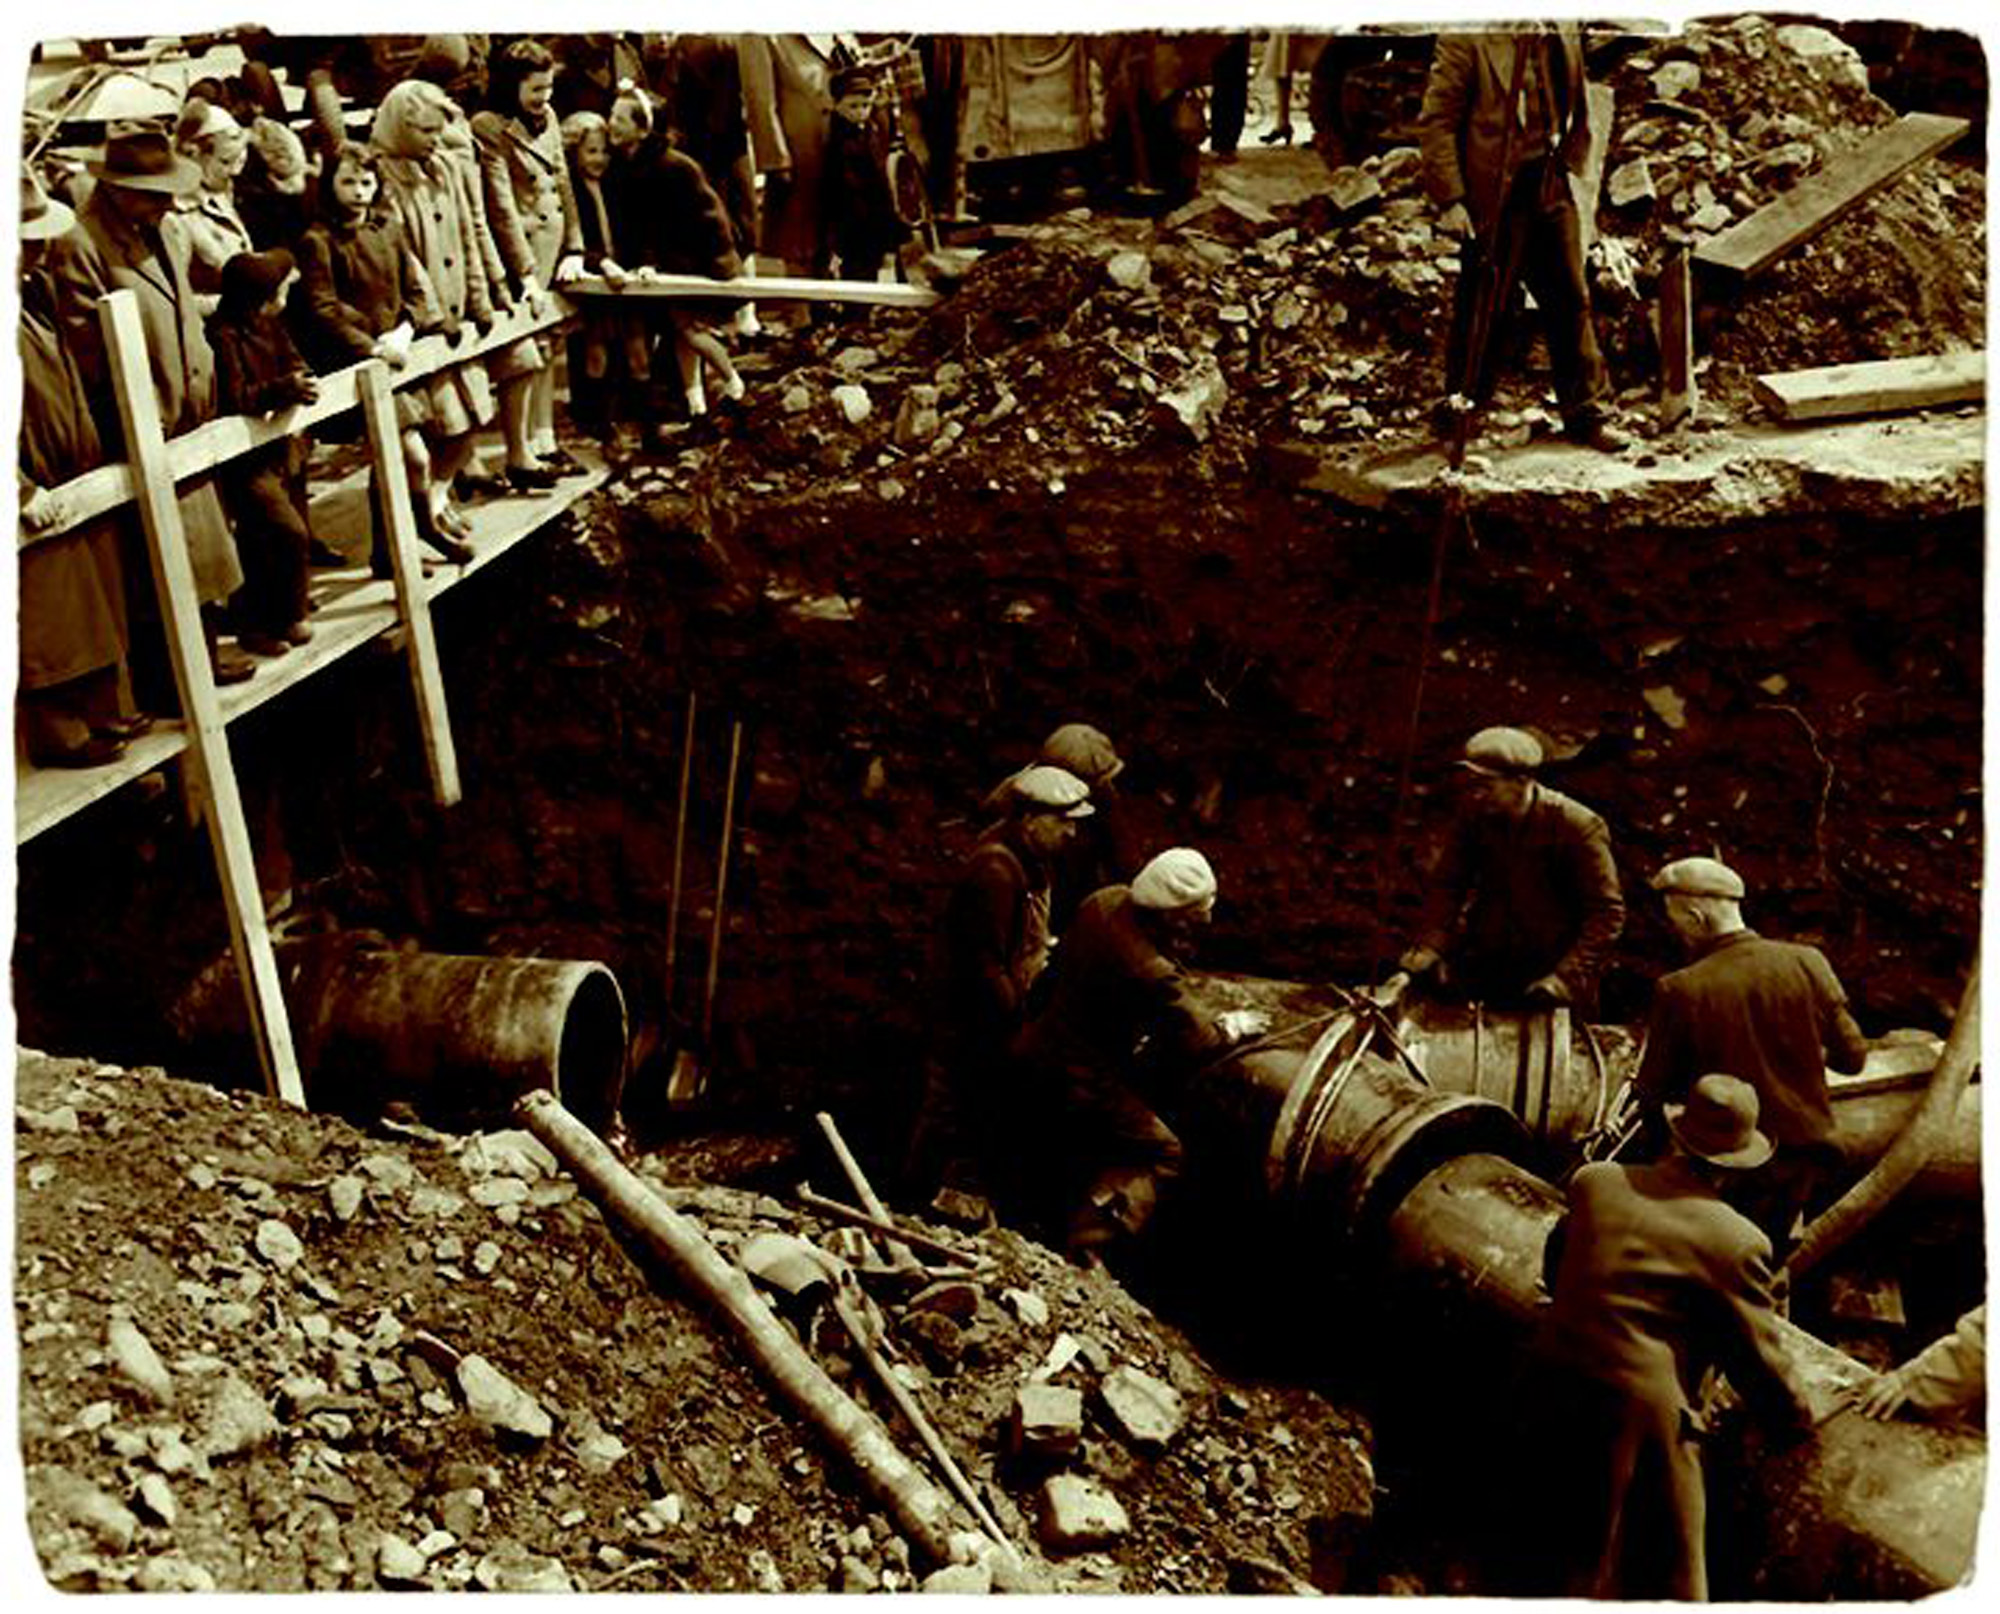 Installing a 24inch watermain on Dutch Village Rd in 1945